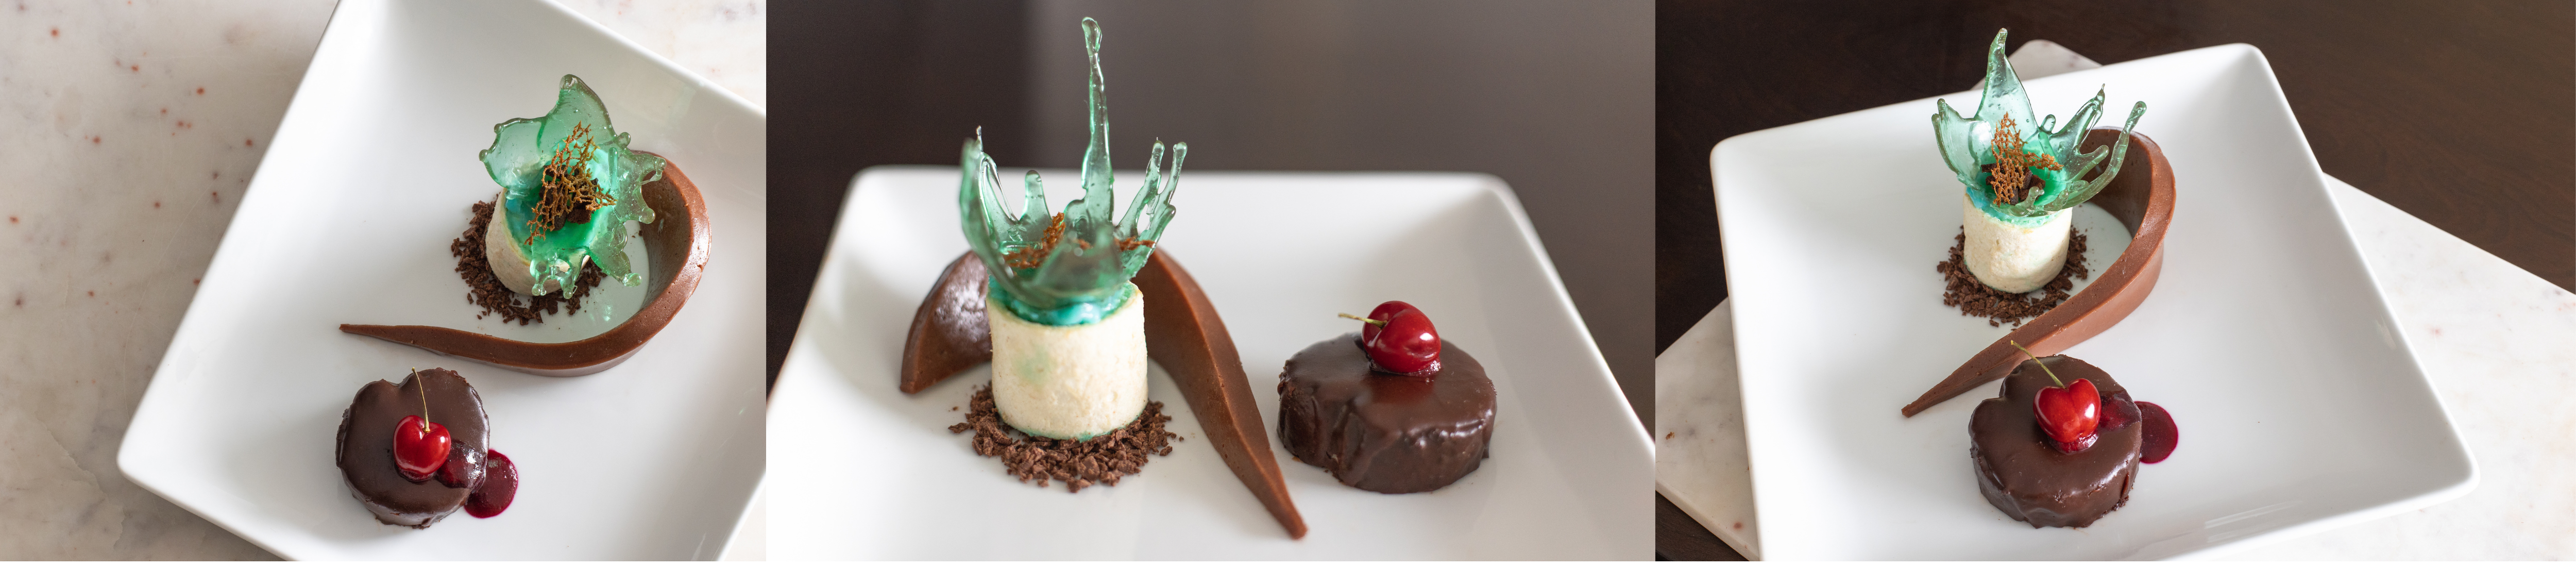 three pictures of one of my desserts